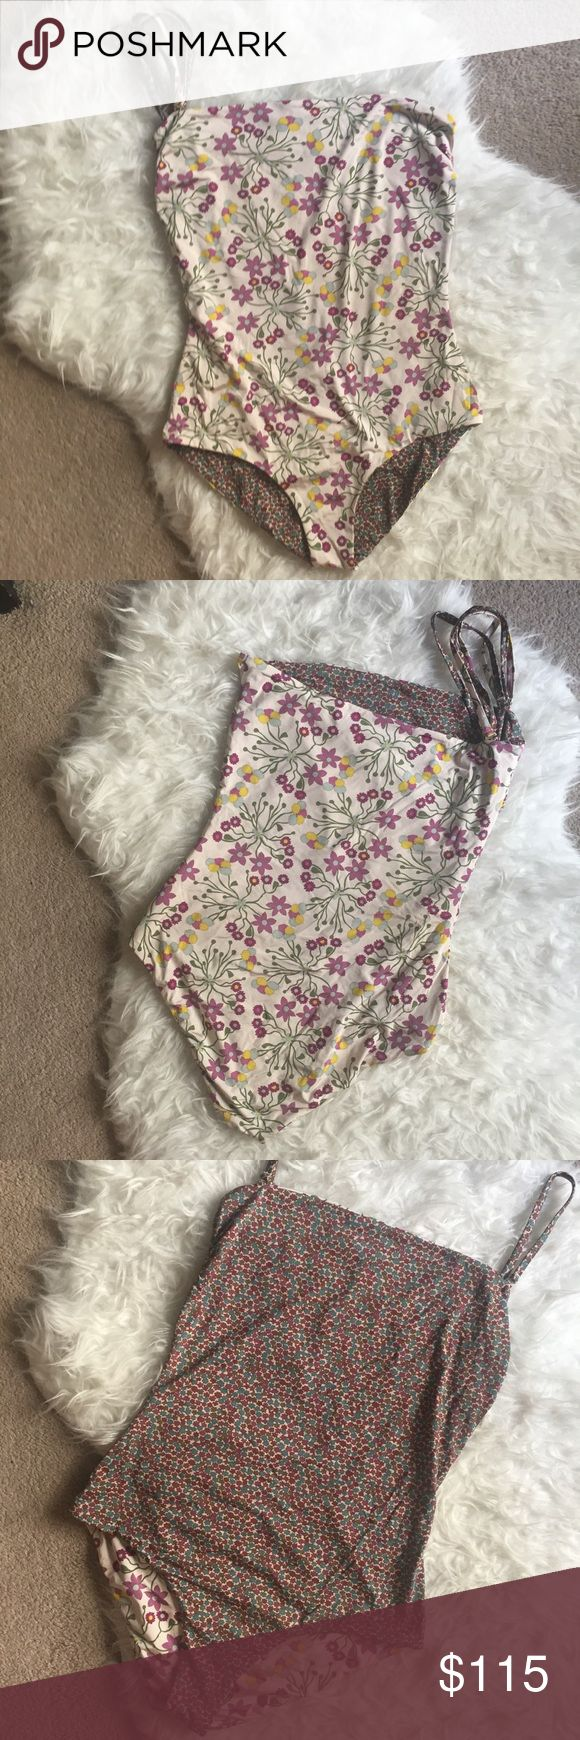 Anthropologie reversible floral one piece swimsuit Purple and tan floral reversible one piece. Has removable straps. Two in each pattern that can be adjusted and changed to many different styles. I think I only wore once, if that. Open to reasonable offers, but I probably won't go much lower. Says size 10, but it fit me and I normally wear a size small. Anthropologie Swim One Pieces